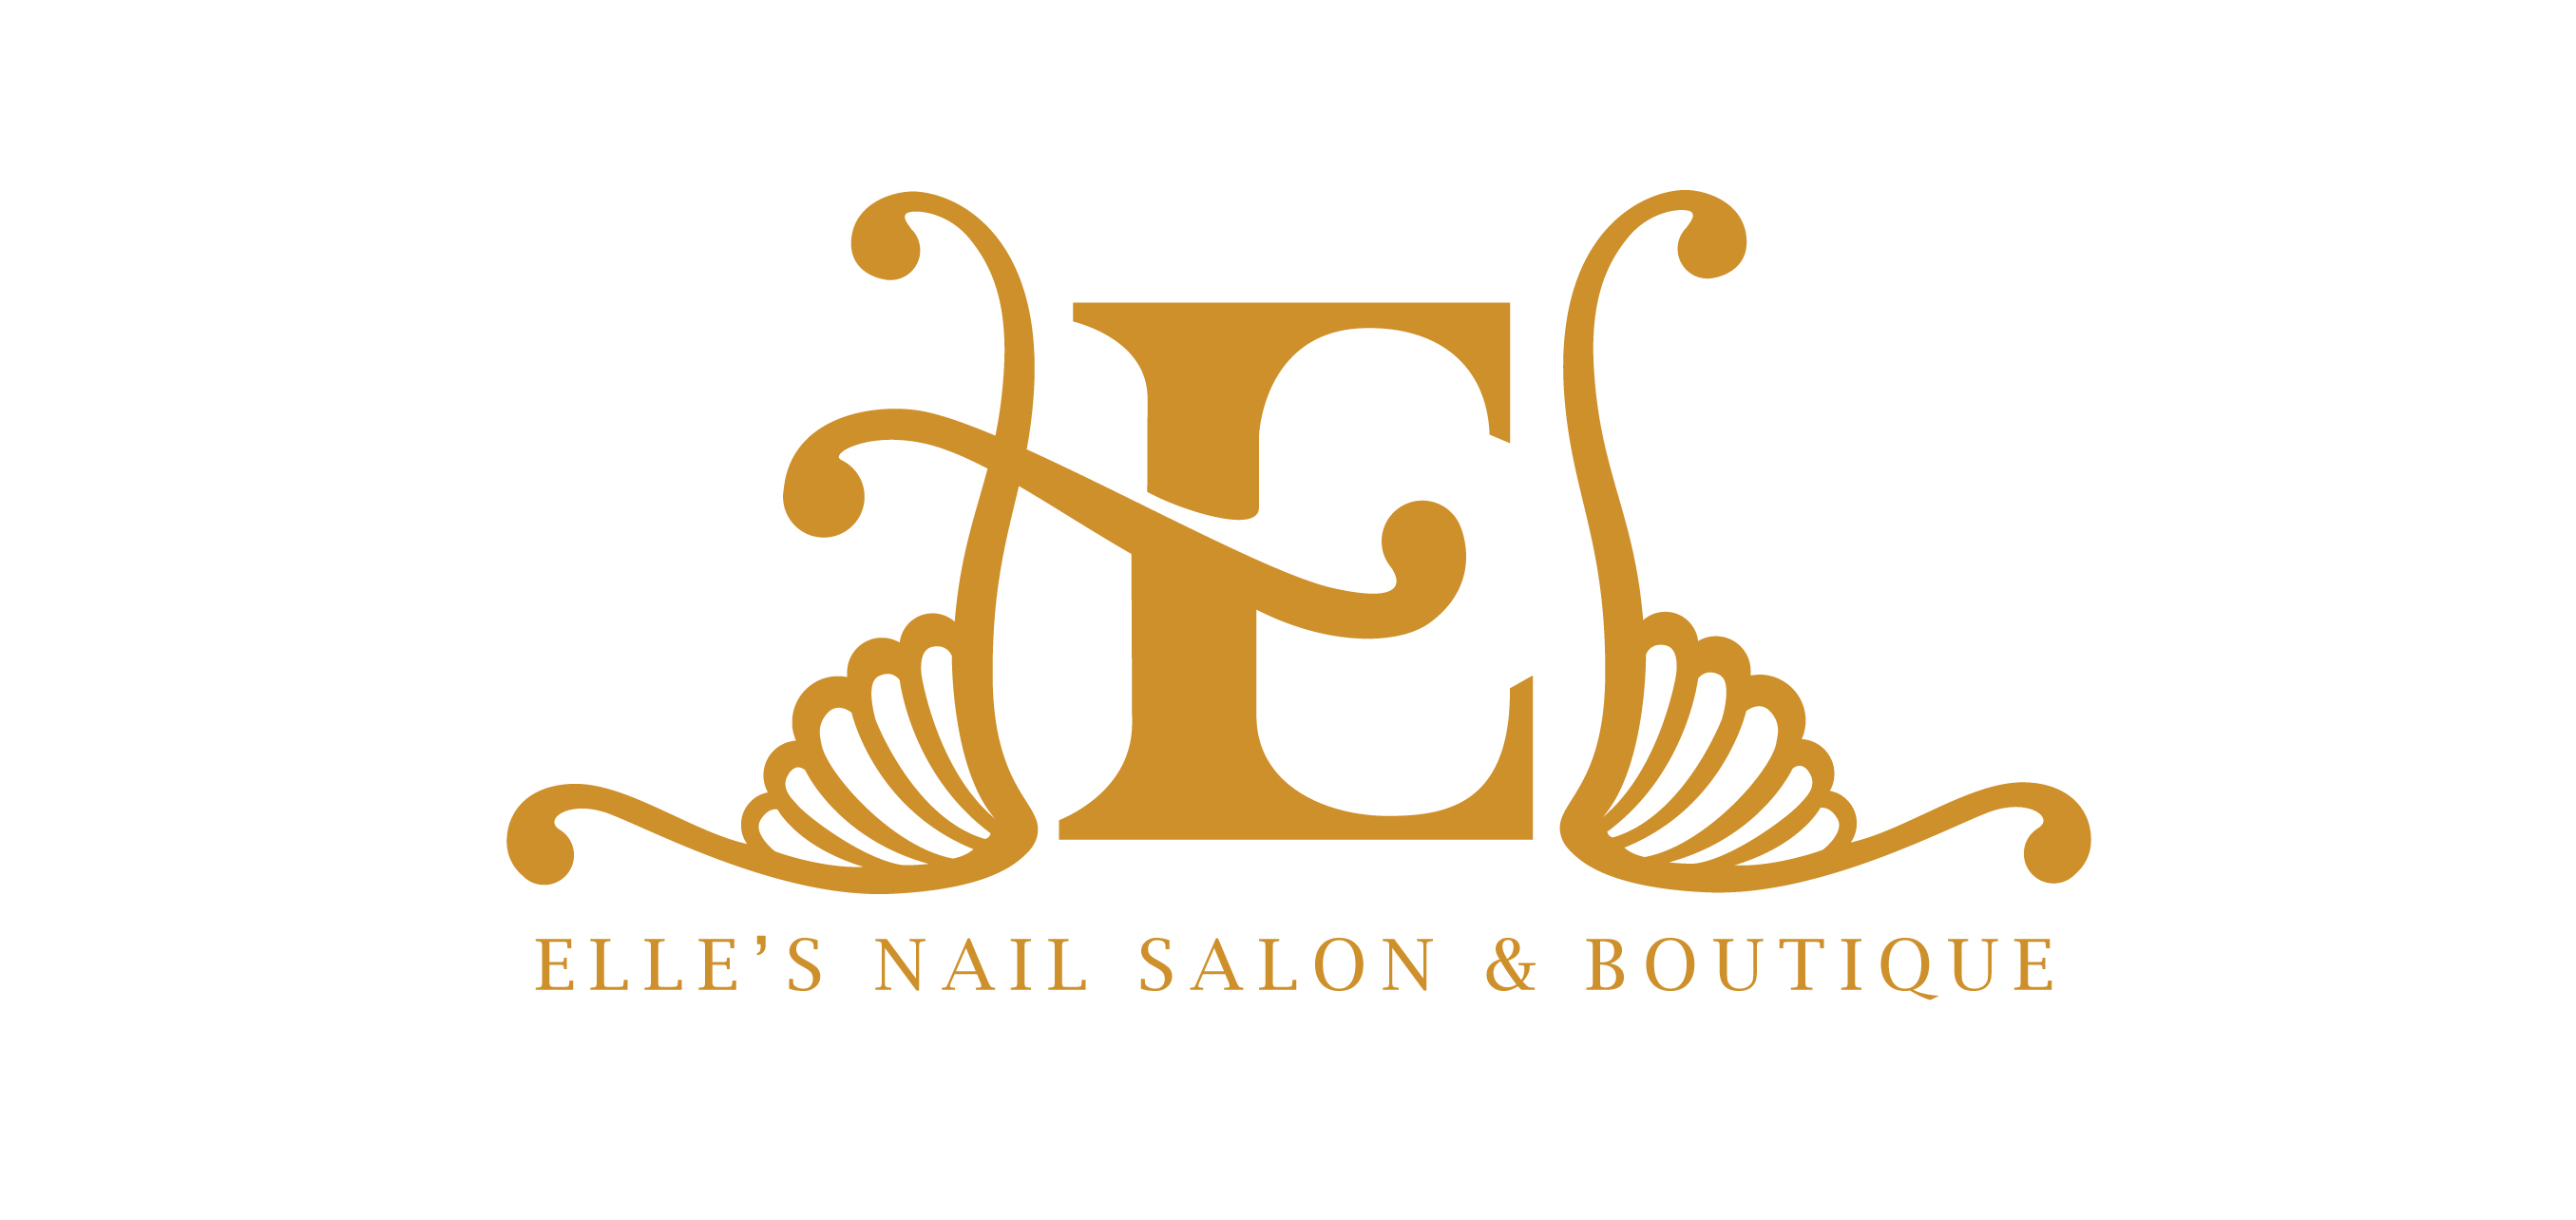 nail salons logos picture 2016 nail salons logos picture - Nail Salon Logo Design Ideas